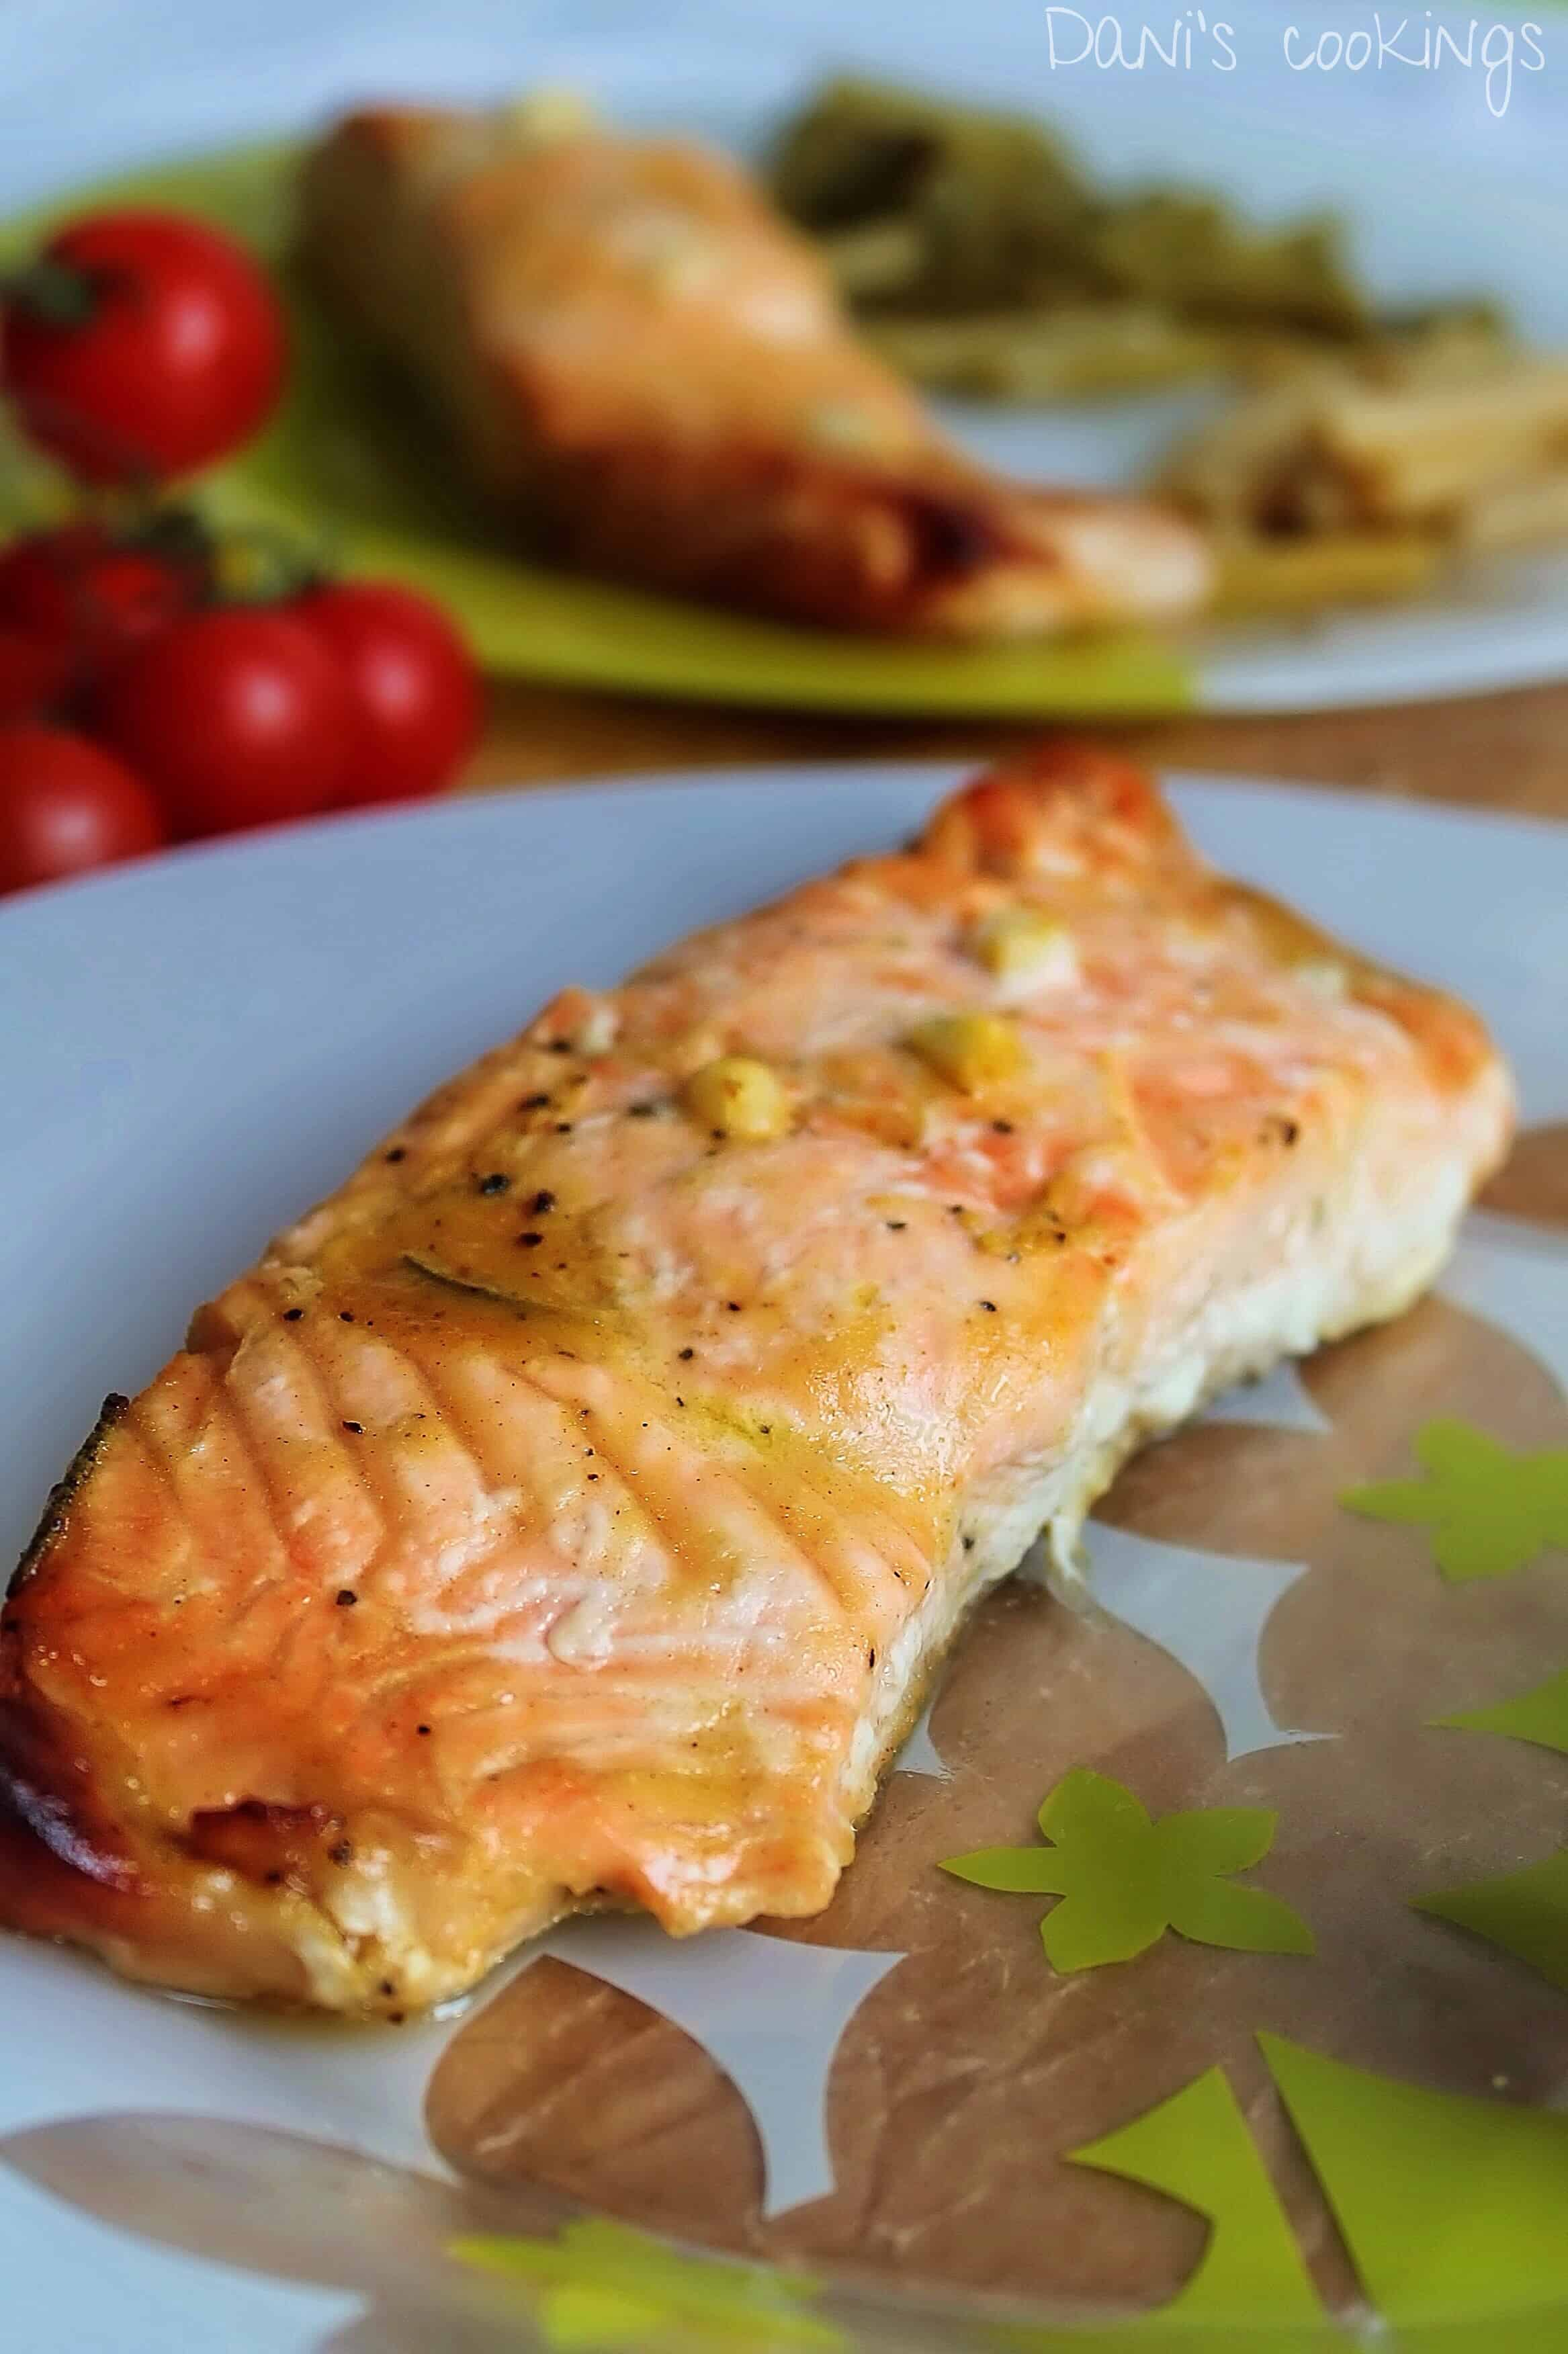 Honey Mustard salmon - daniscookings.com